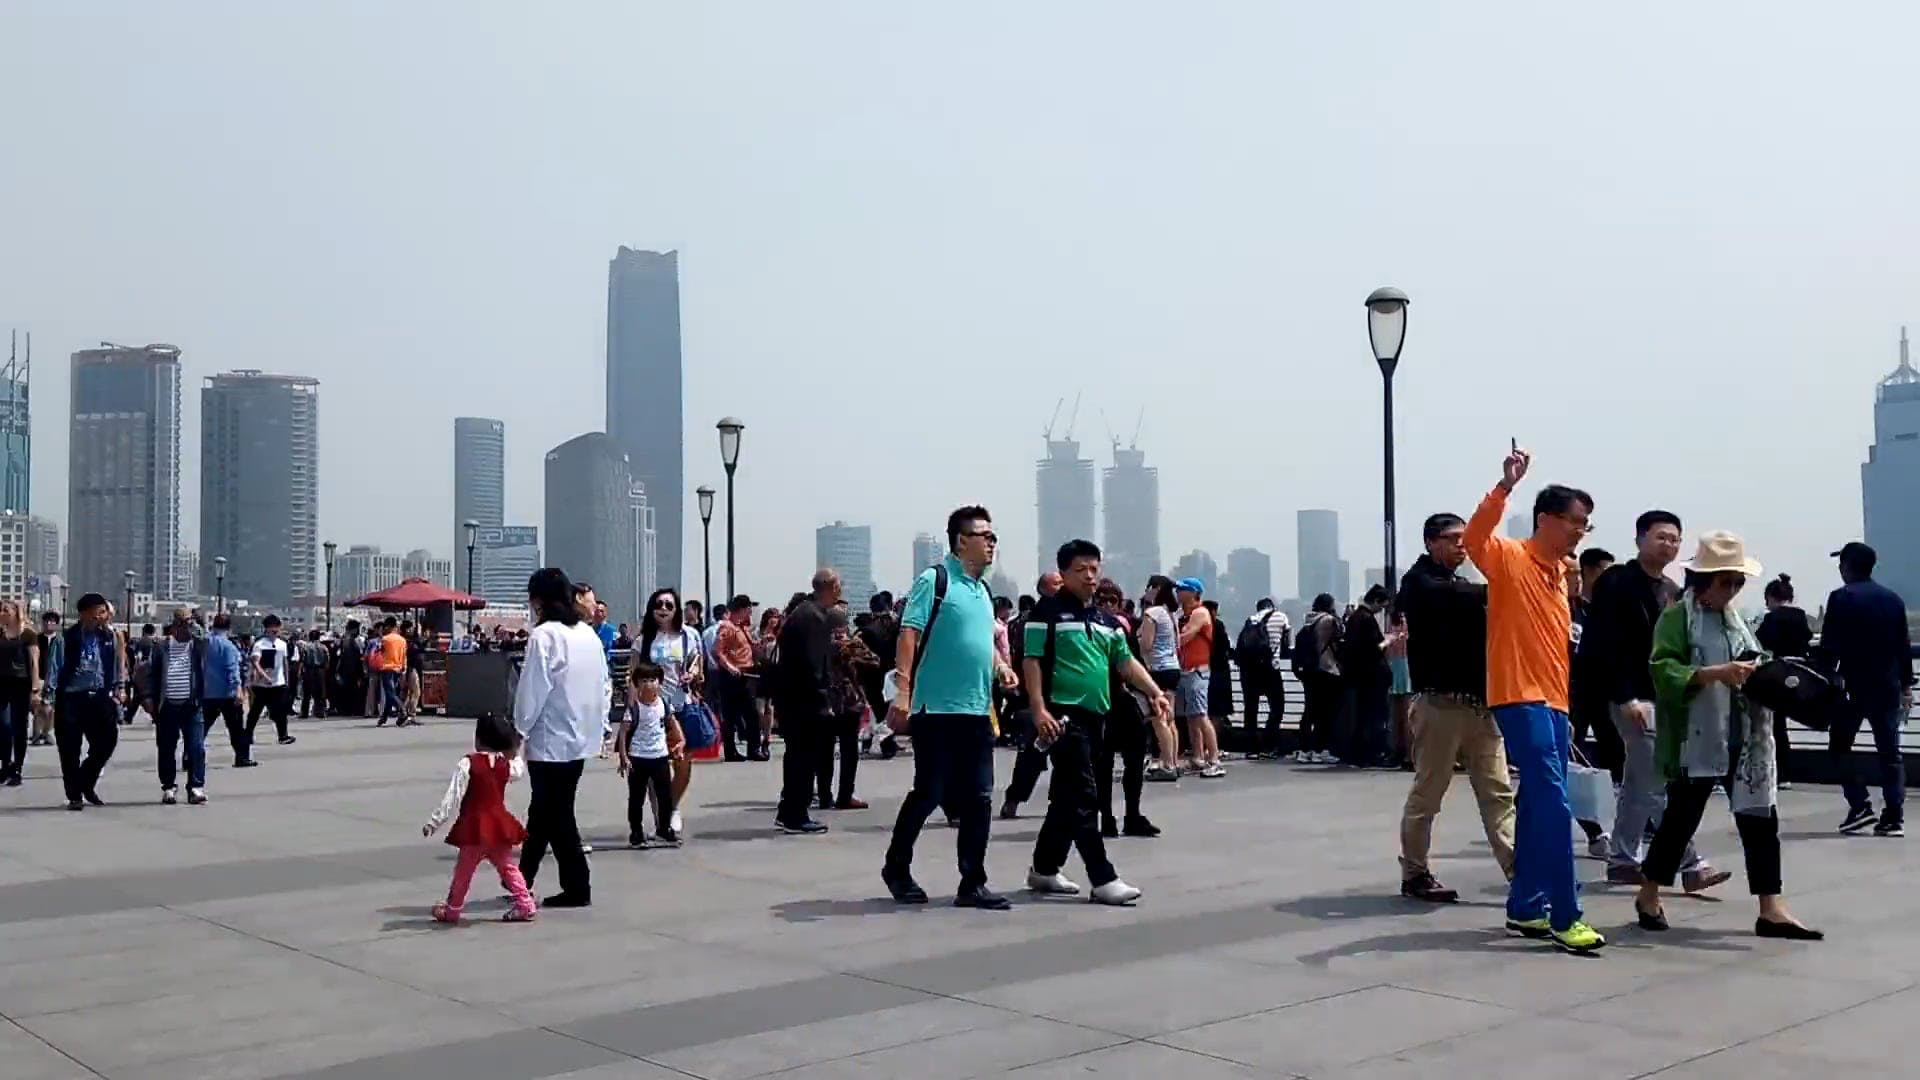 Time Lapse Video Of Tourists